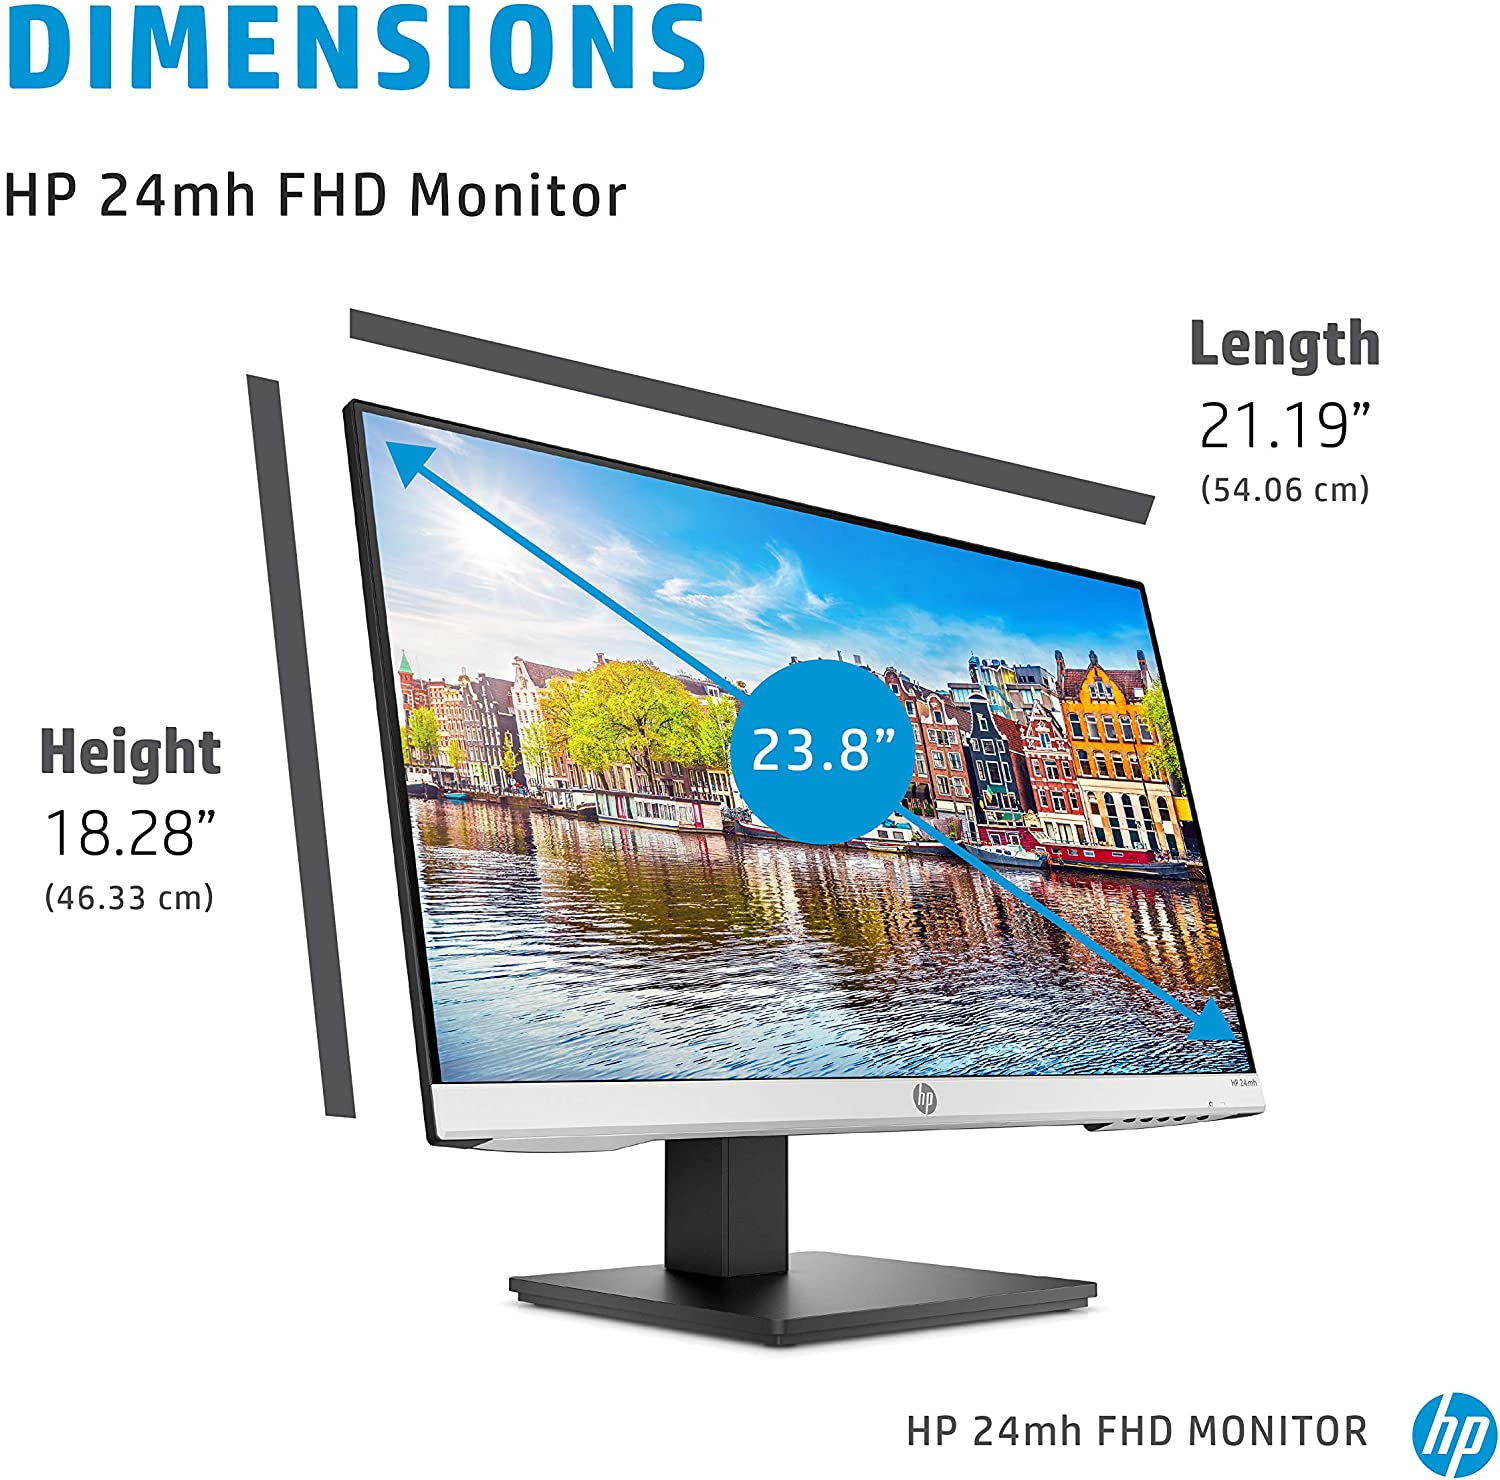 HP 24mh FHD Monitor - Computer Monitor with 23.8-Inch IPS Display (1080p)